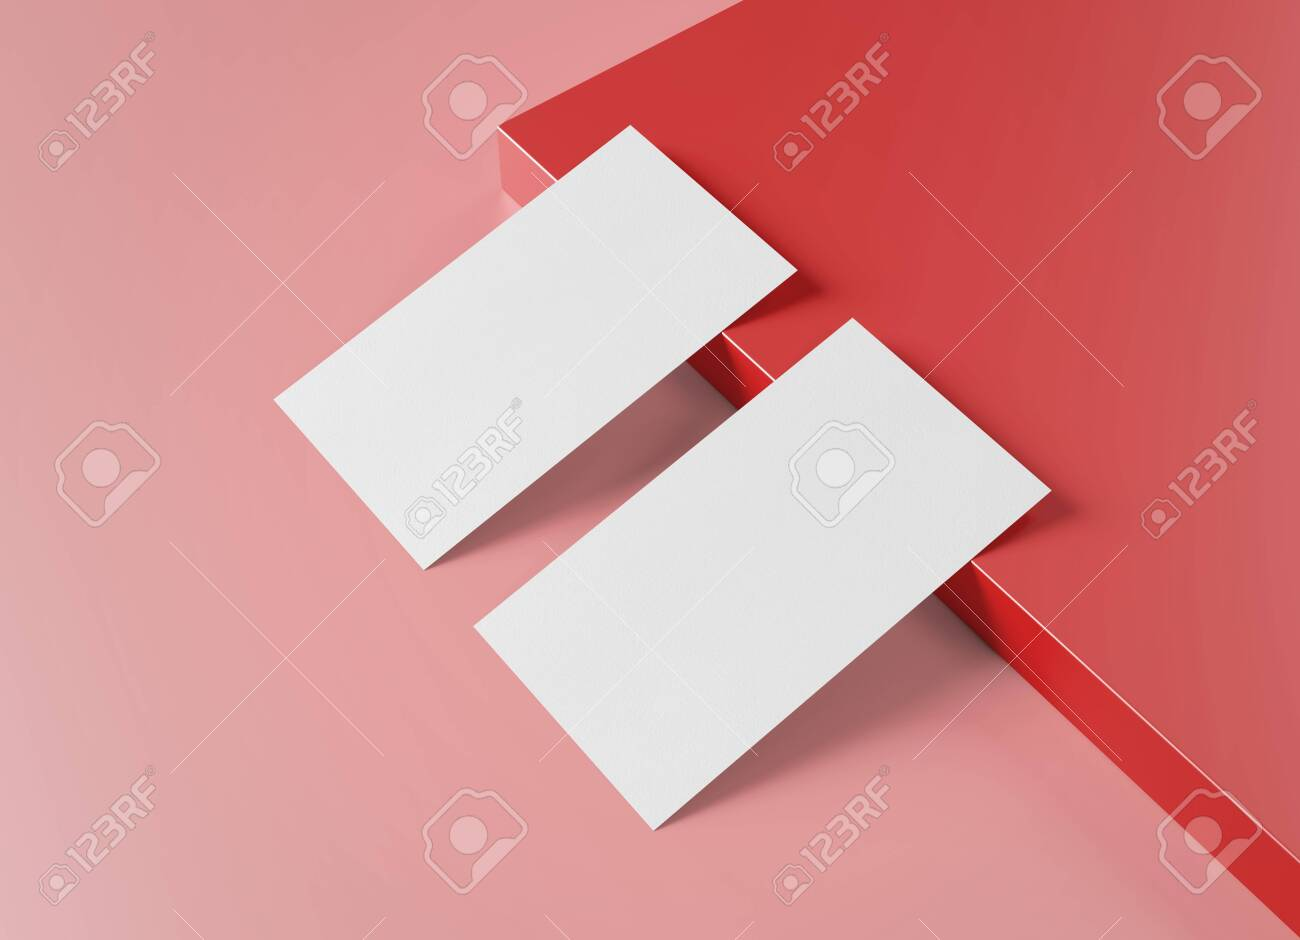 Two white US business card Mockup laying on red background. American size calling card front and back laying on colored surface 3D rendering - 150516890